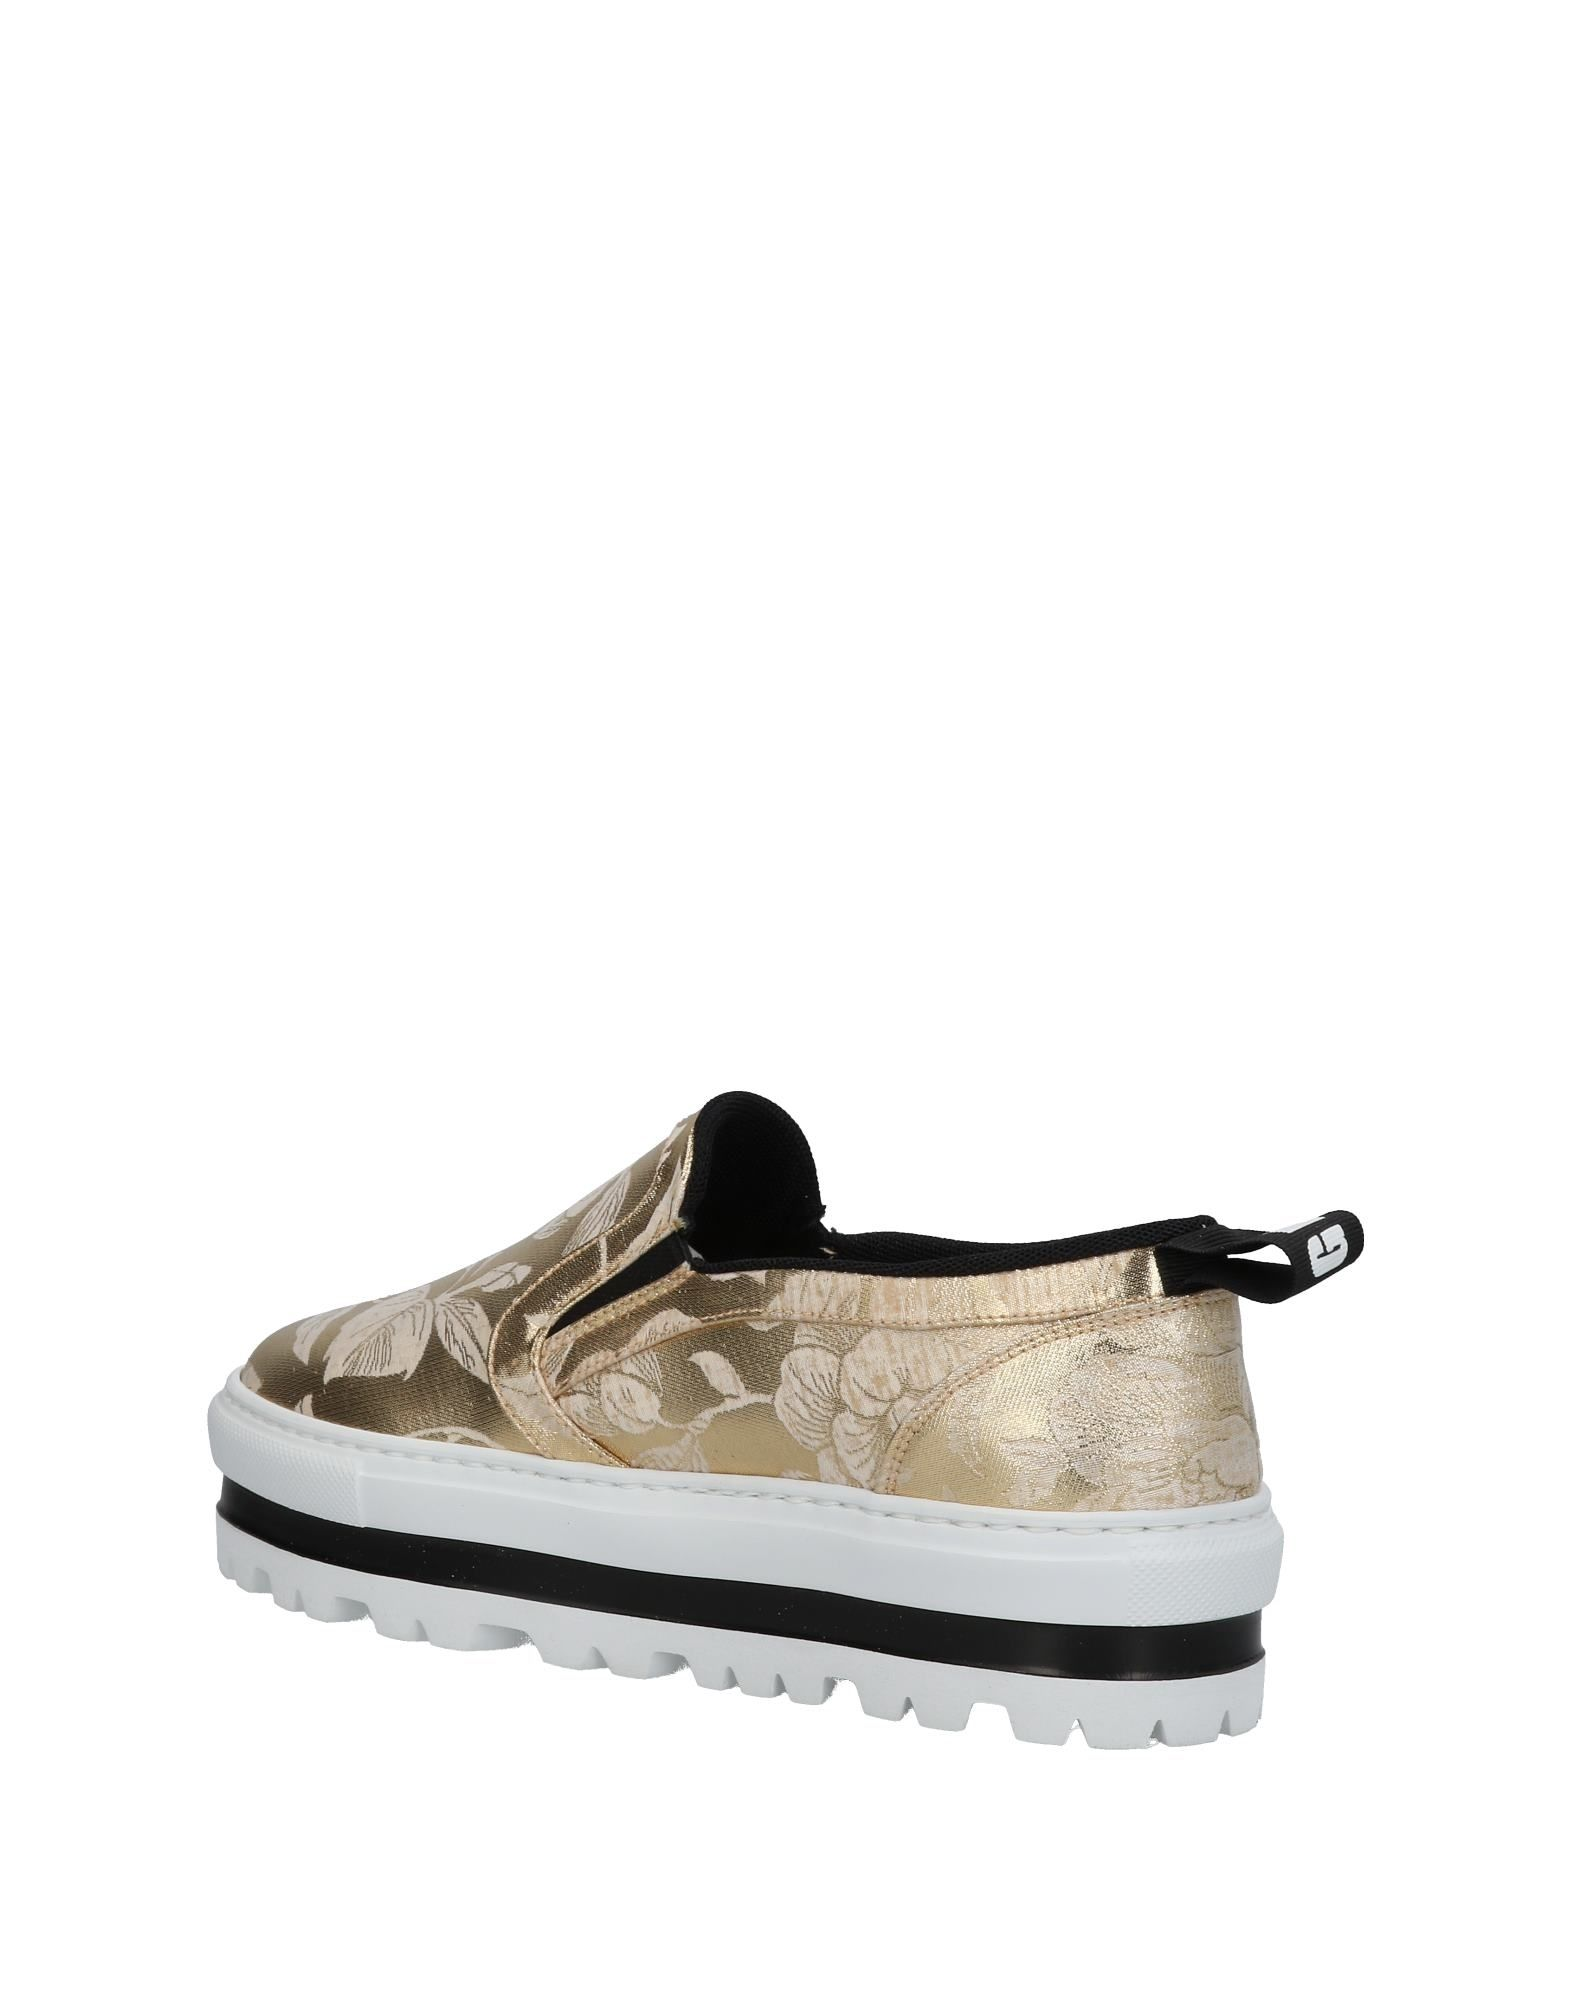 Msgm Sneakers - Women Msgm Sneakers Sneakers Sneakers online on  Canada - 11419058UV d65494